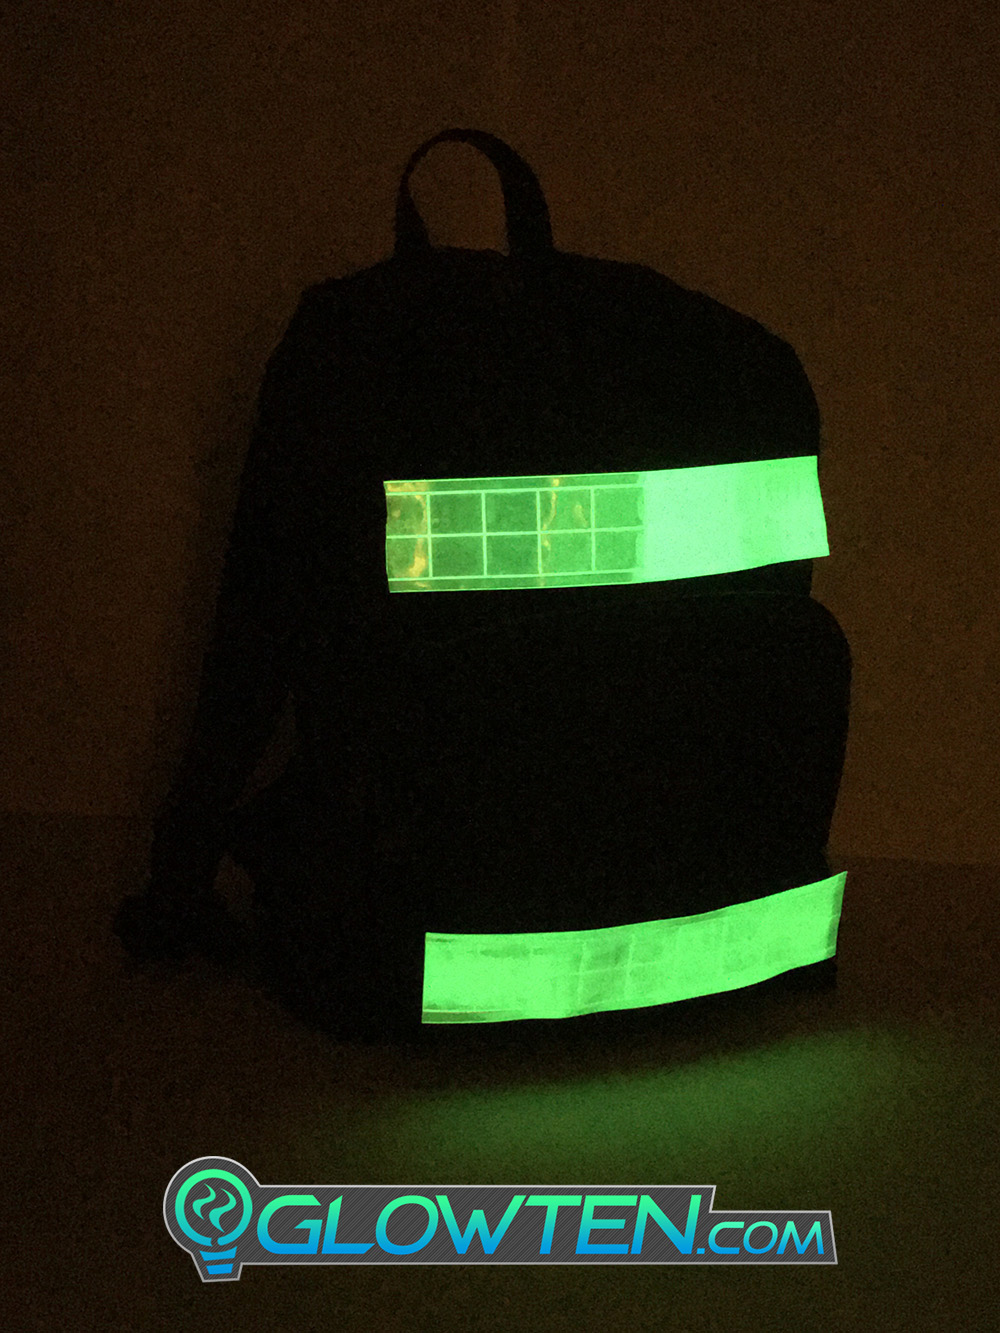 GLOWTEN.com - Application Clothing, Shirts, Jackets, Hats, Bags Cycling Gear Sew This Band Onto Clothing Or A Bag Make Sure The Reflective Surface Is Facing Outwards LUMINOUS Band Glow in the Dark See Better At Night Safety Hazard Cycling Reflective High-Visibility Band Biking at Night Bicycle picture photo cap preview pic 6